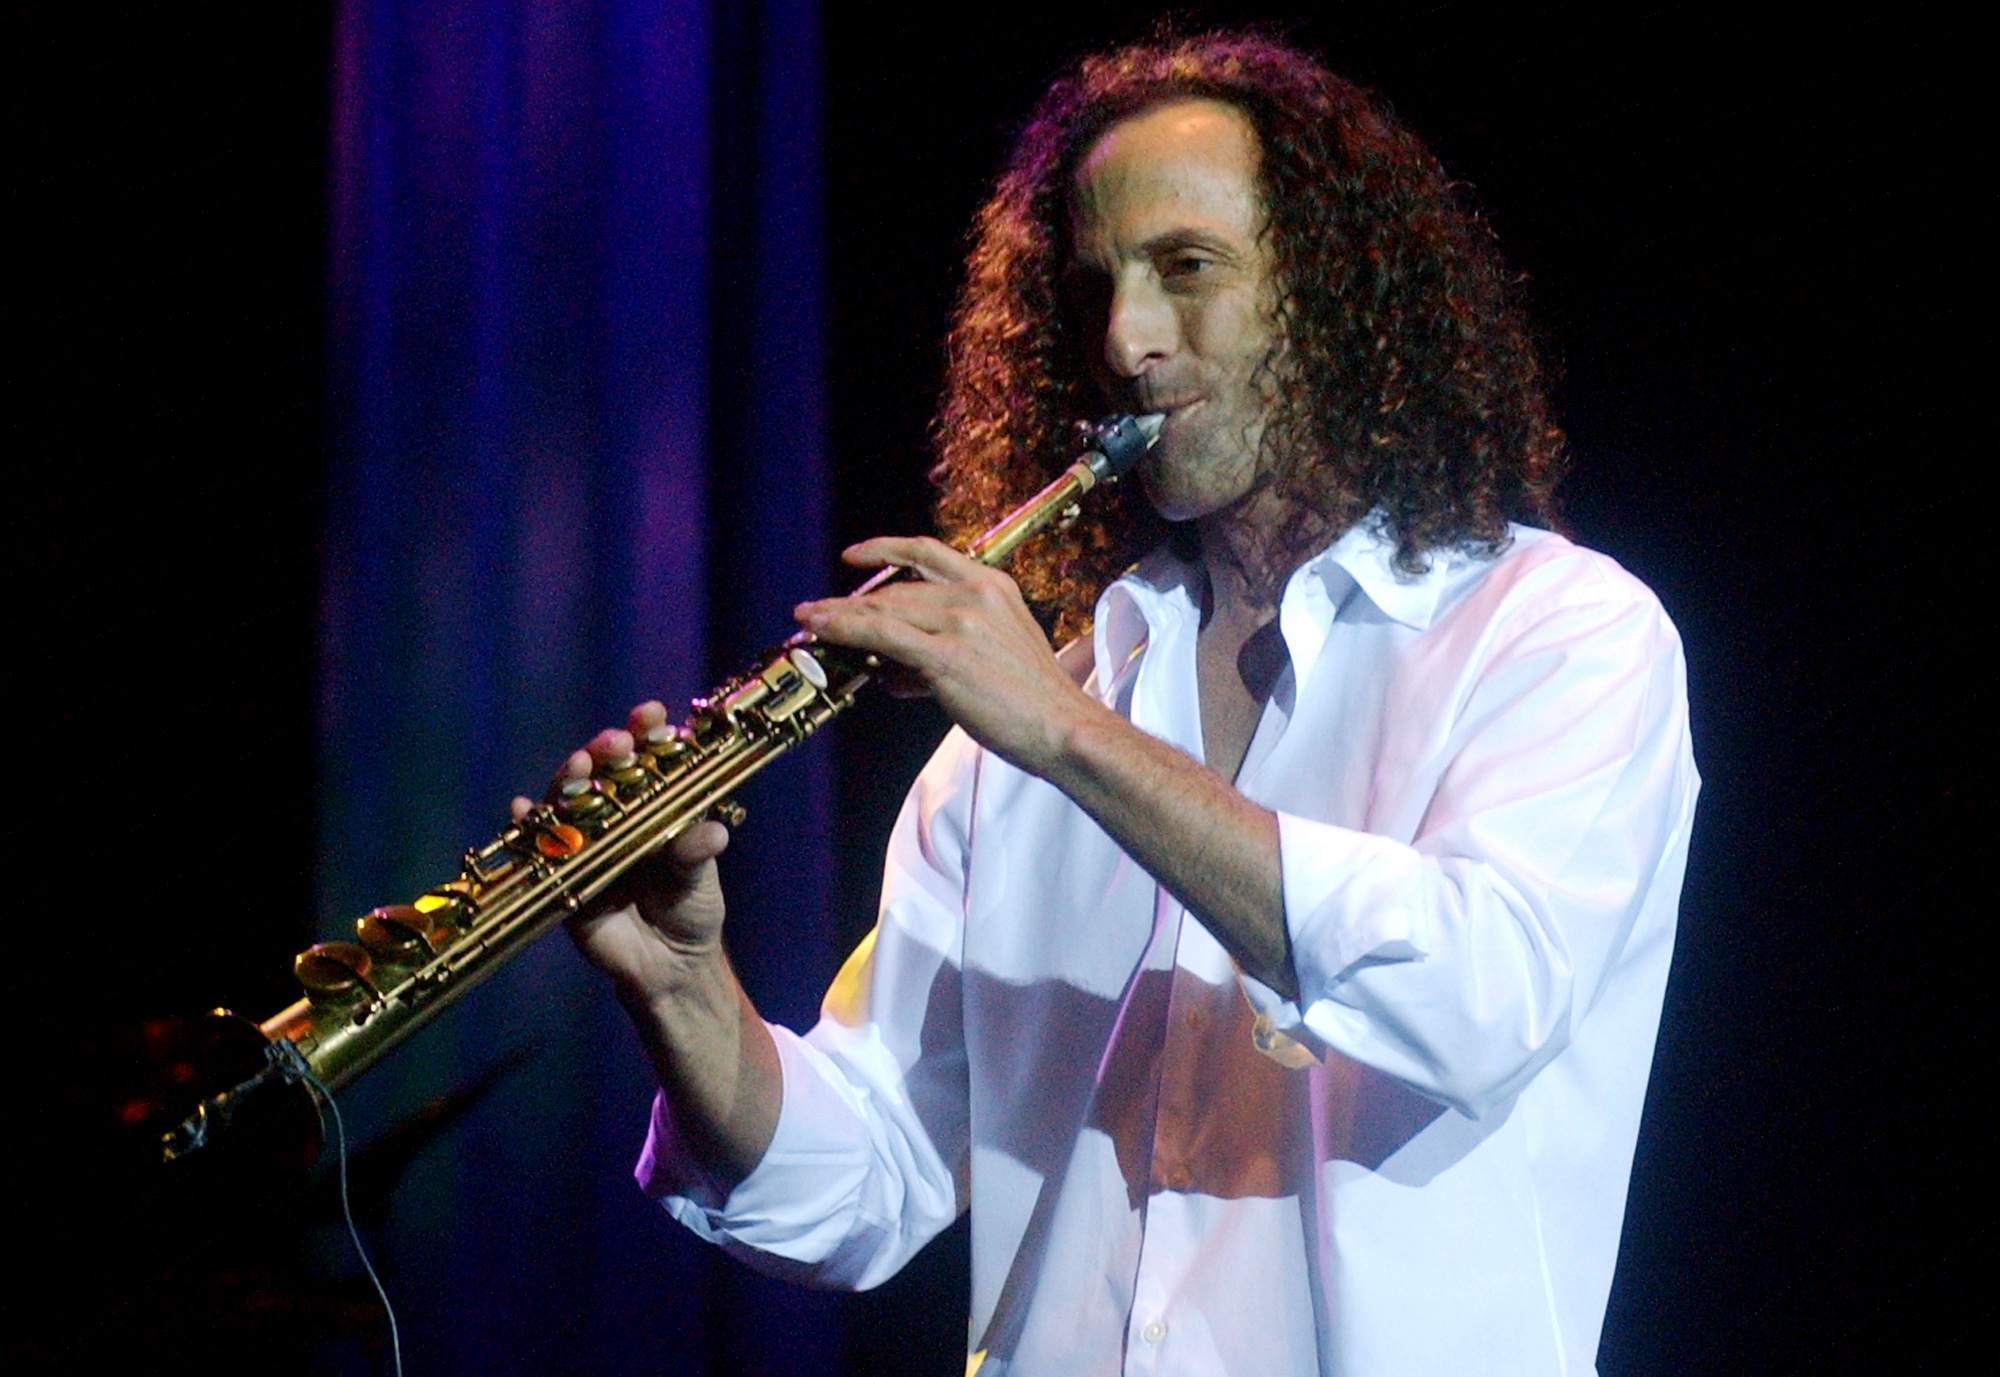 Stranahan to host Kenny G, gift drive - The Blade